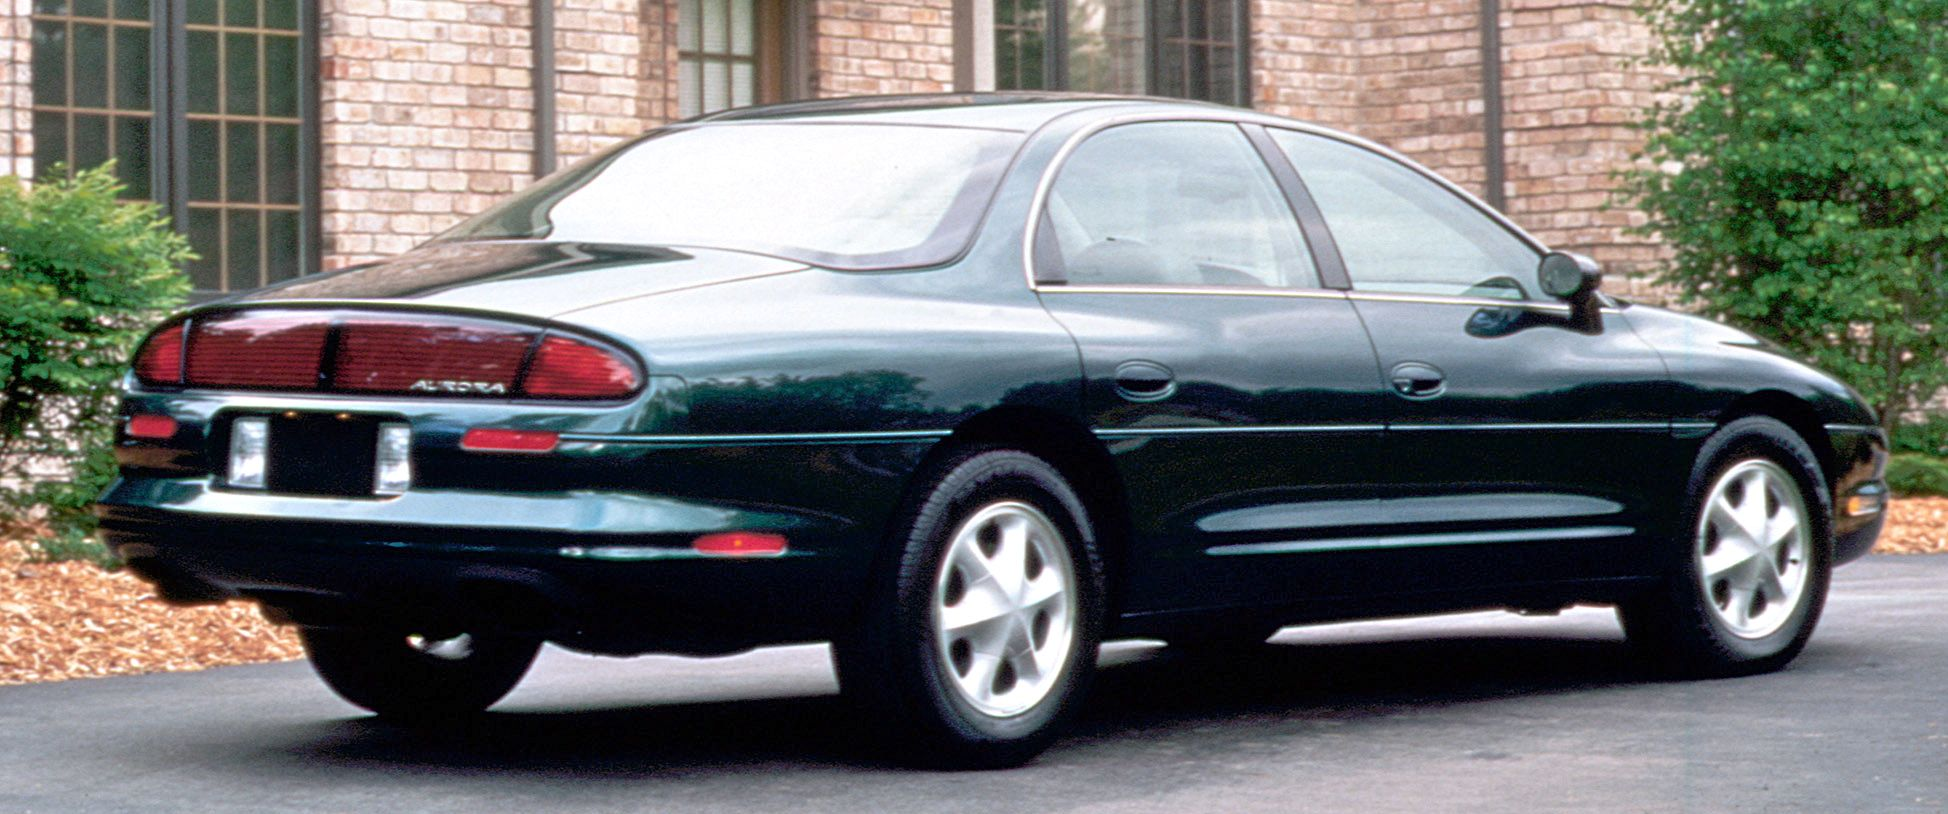 1997 oldsmobile aurora oldsmobile car pictures sedan 1997 oldsmobile aurora oldsmobile